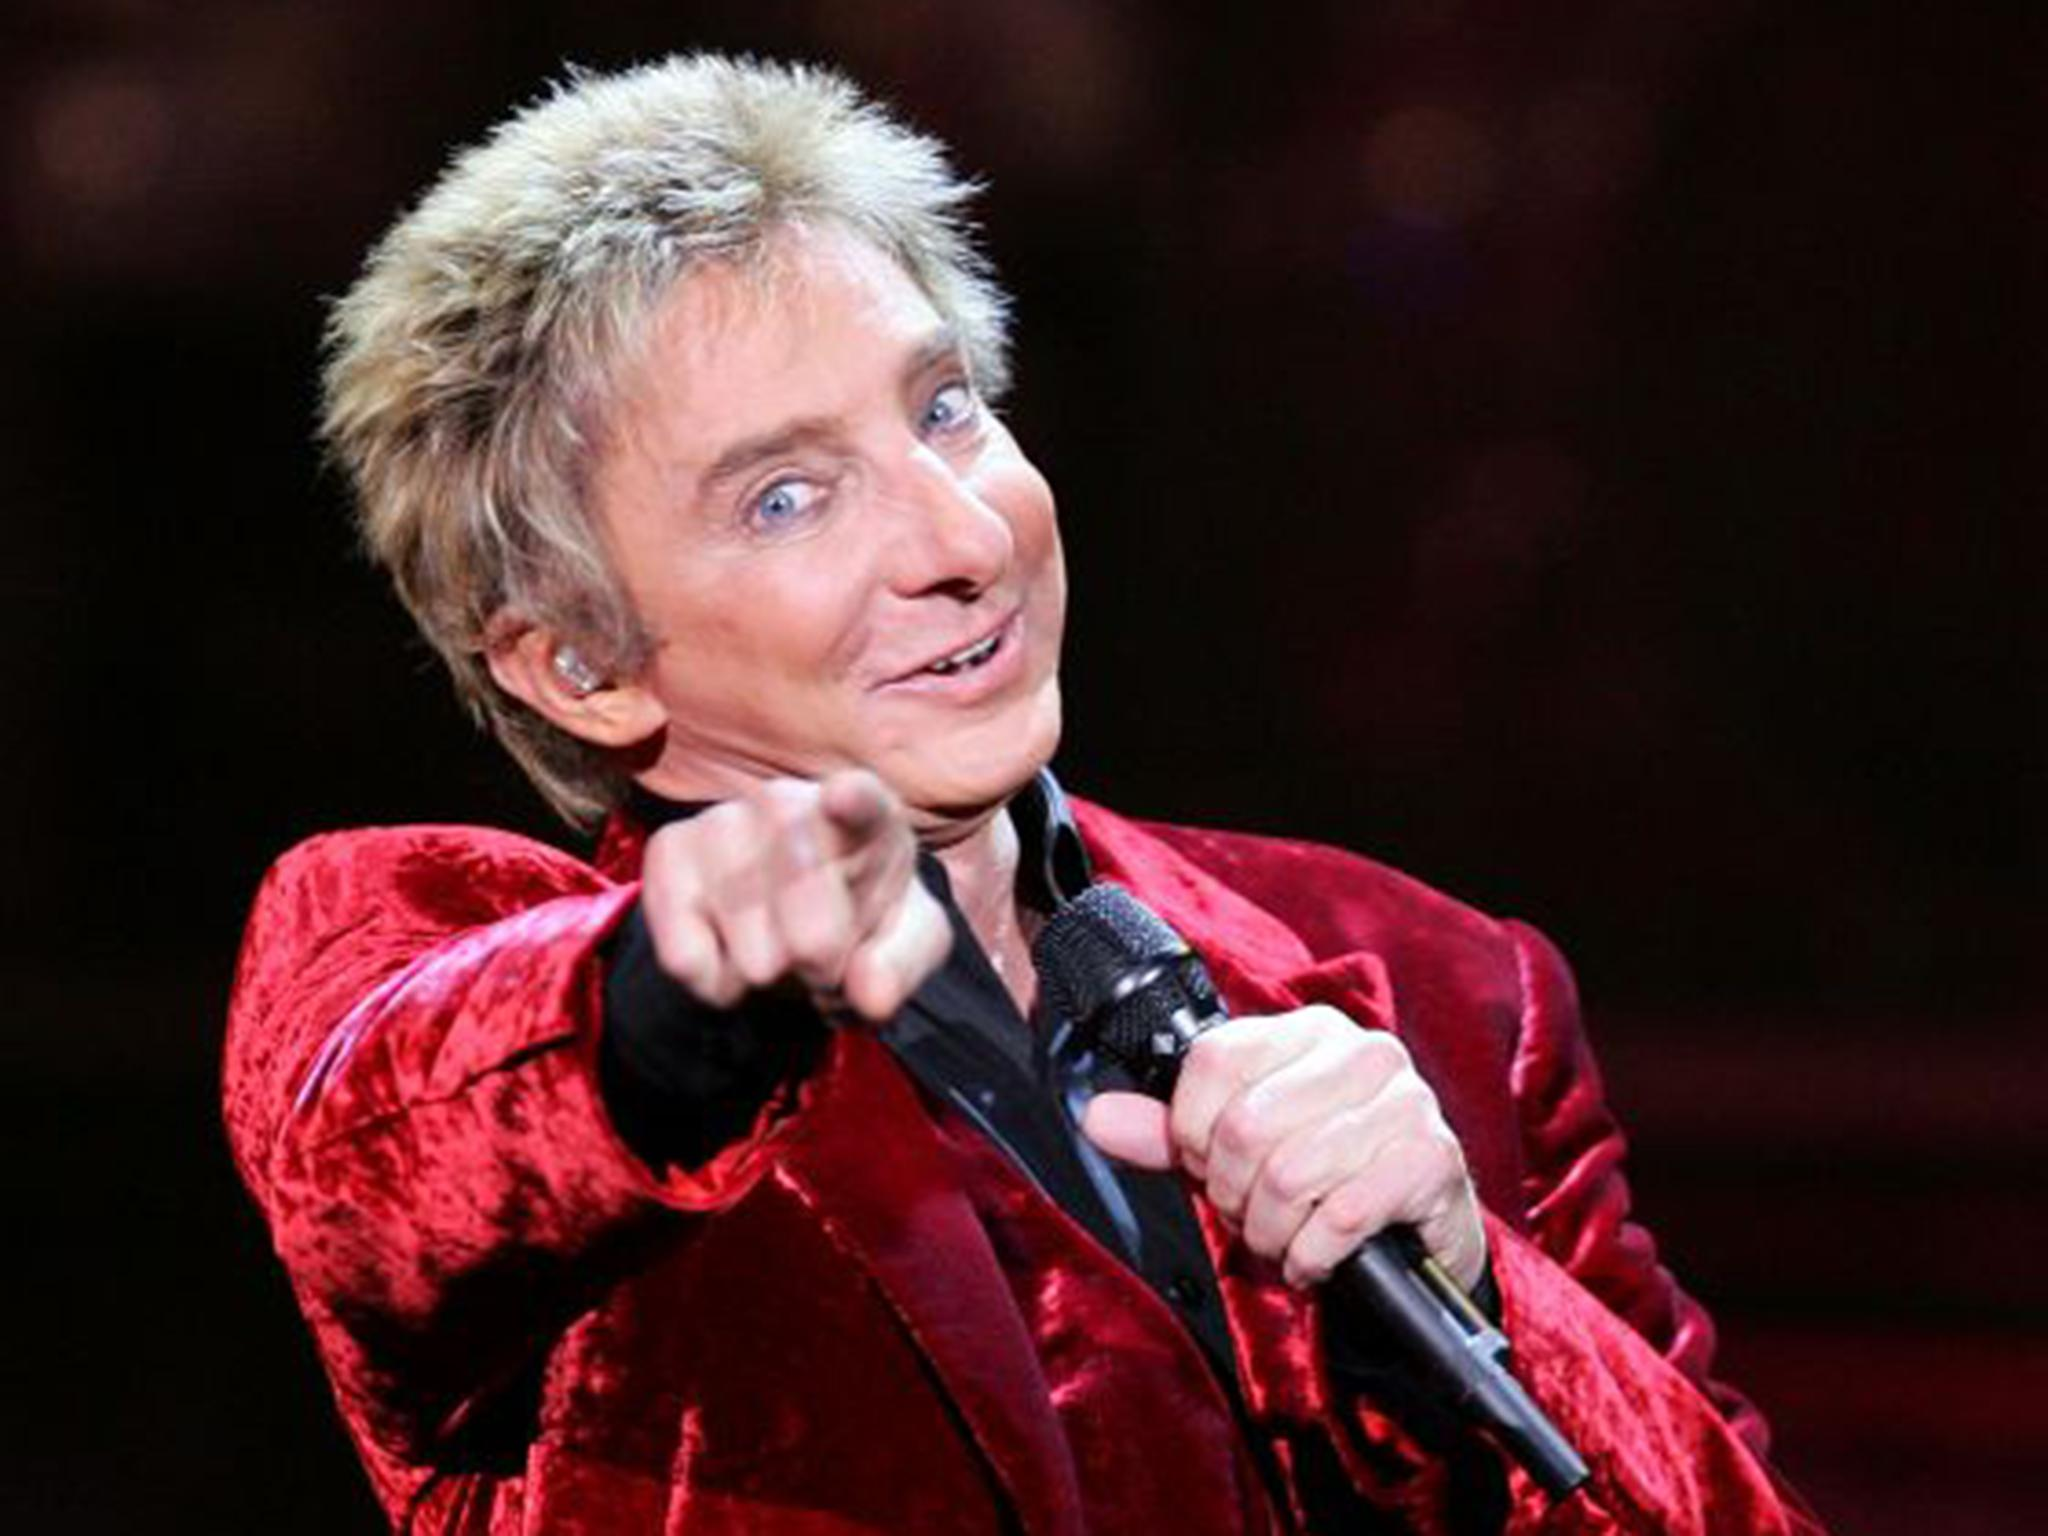 Barry Manilow - latest news, breaking stories and comment - The ...